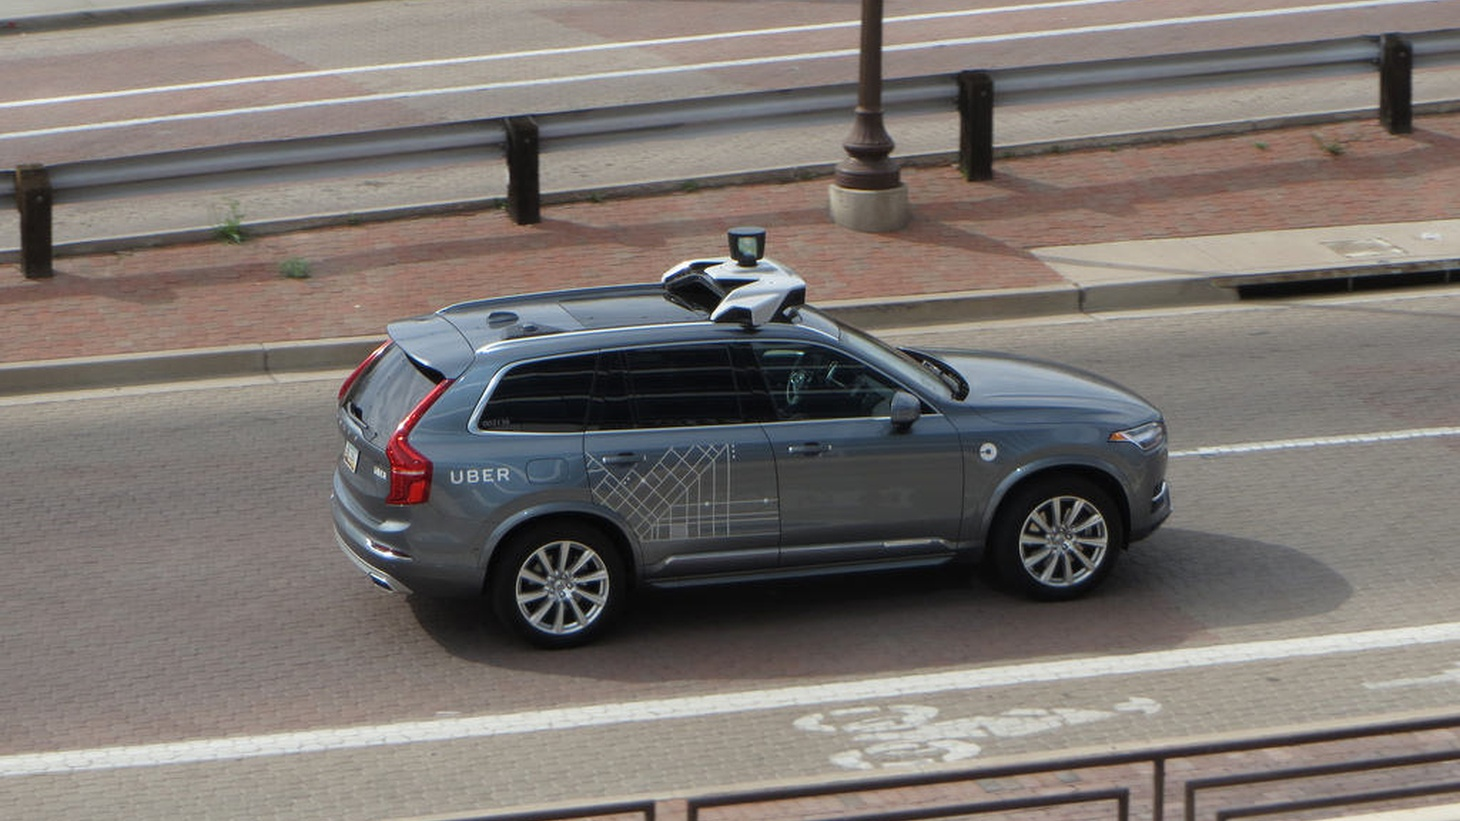 As Uber investigates last week's fatal crash in Tempe, Arizona involving a self-driving car, the company has decided to pull its application to test self-driving cars on California streets.